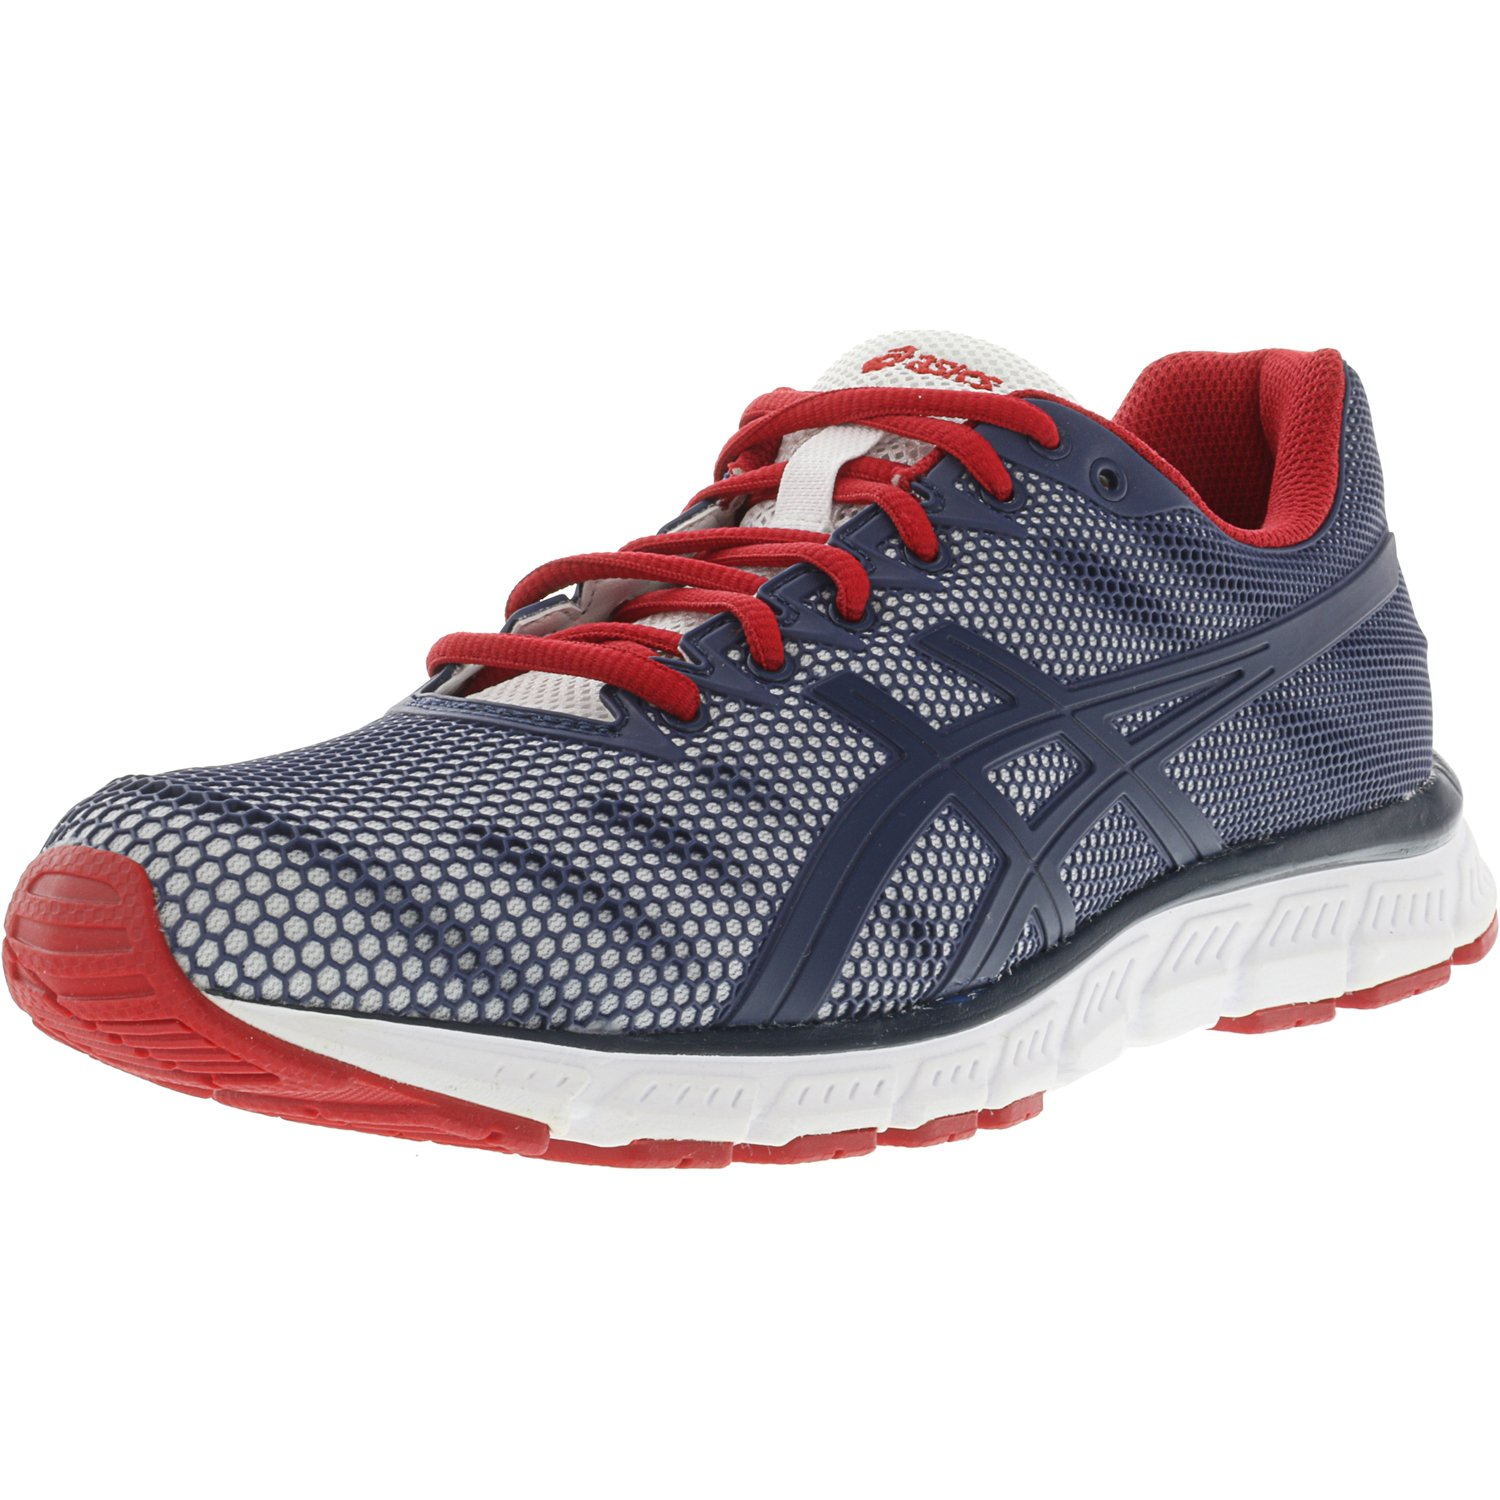 6b957876b61495 Asics Men s Jb Elite Tr Black   Olympic Gold Red Ankle-High Wrestling Shoe  - 13M - Walmart.com